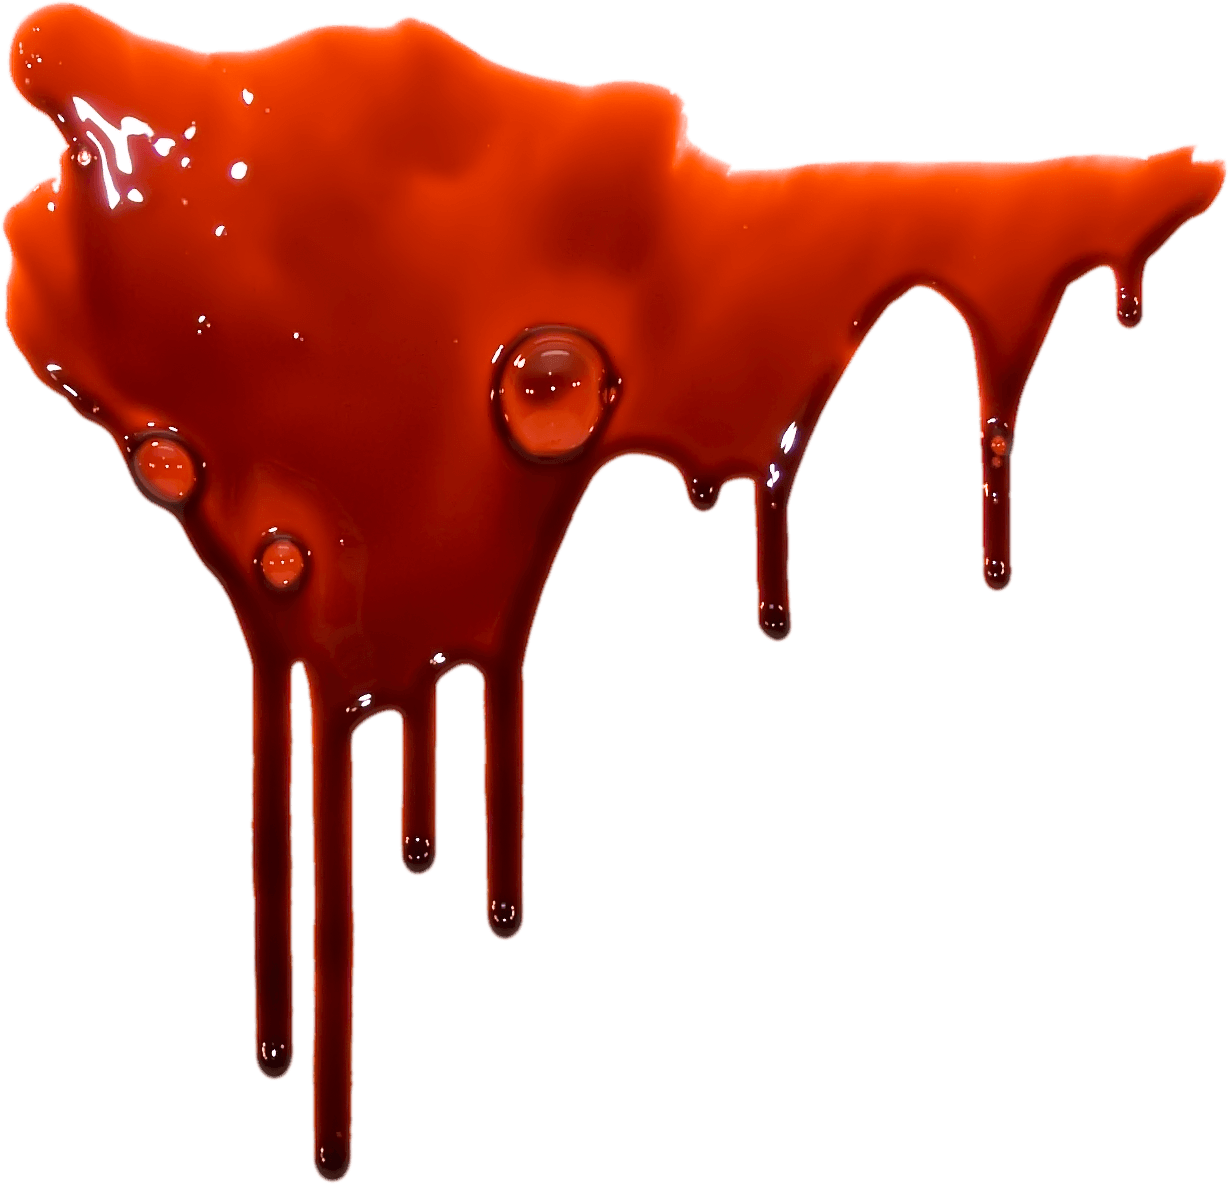 Bloody numbers png. Download blood image hq